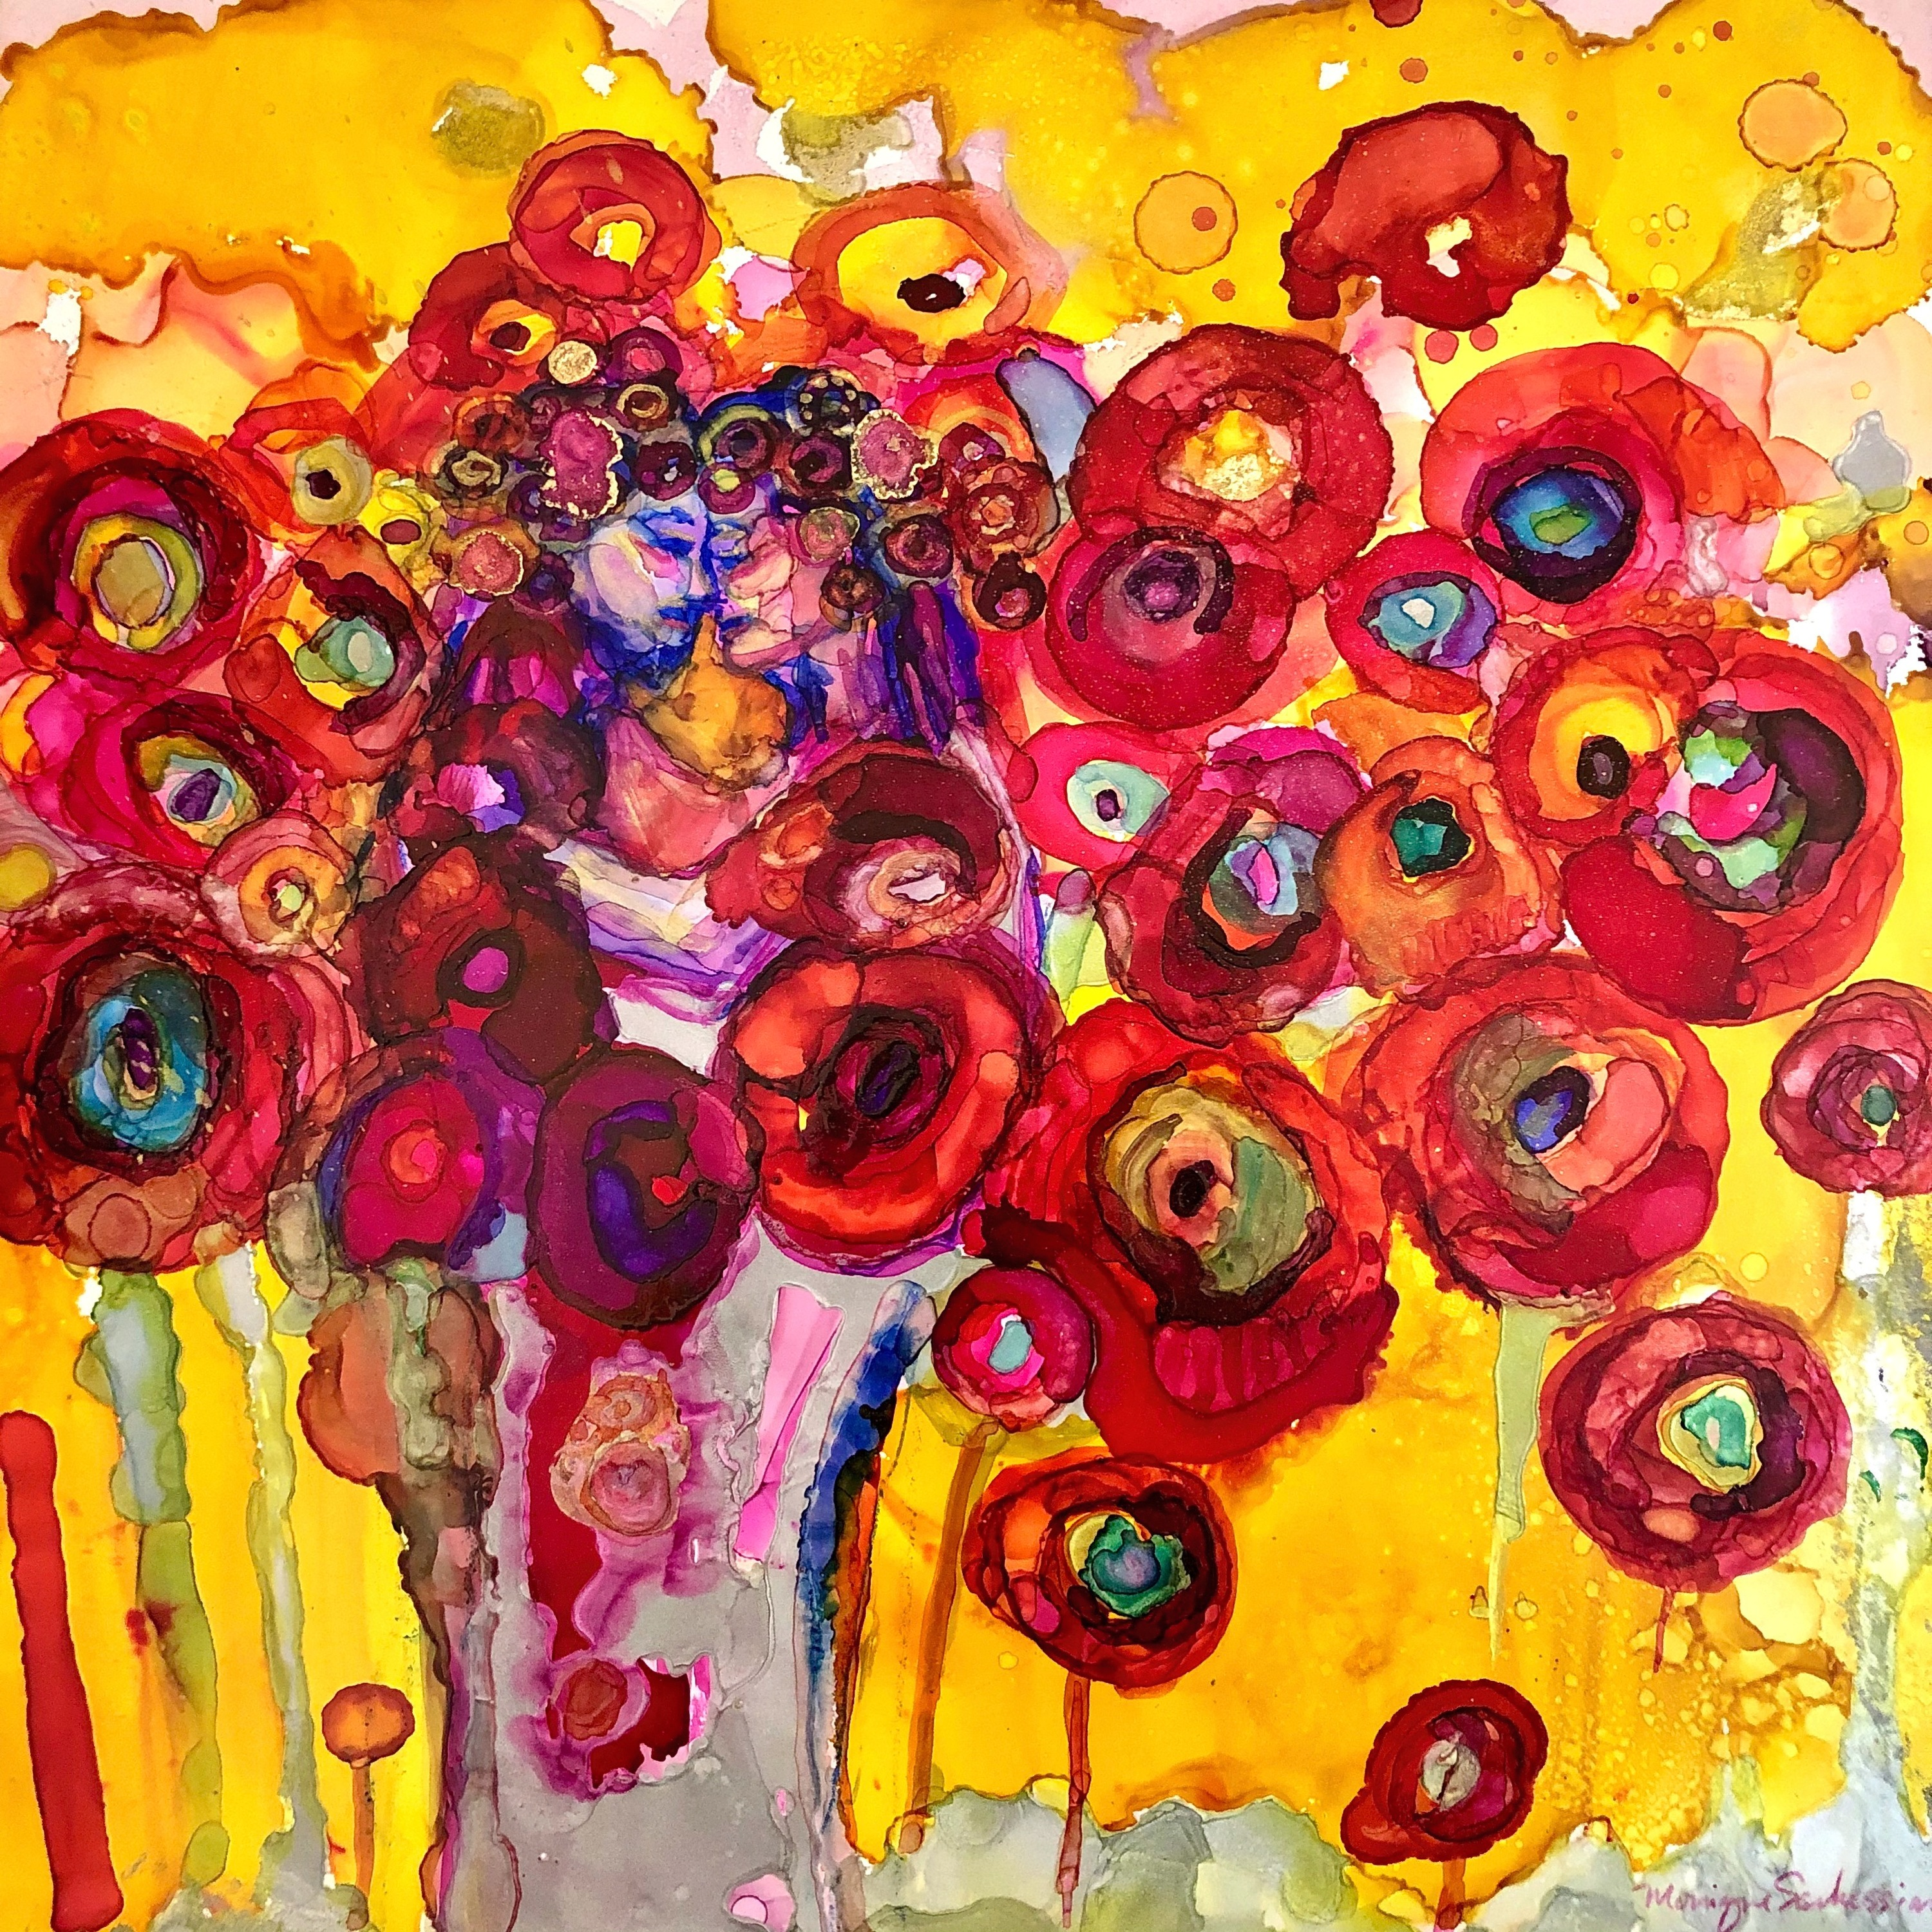 In the king s garden 4 alcohol ink on panel 12x12.jpg q5asvd